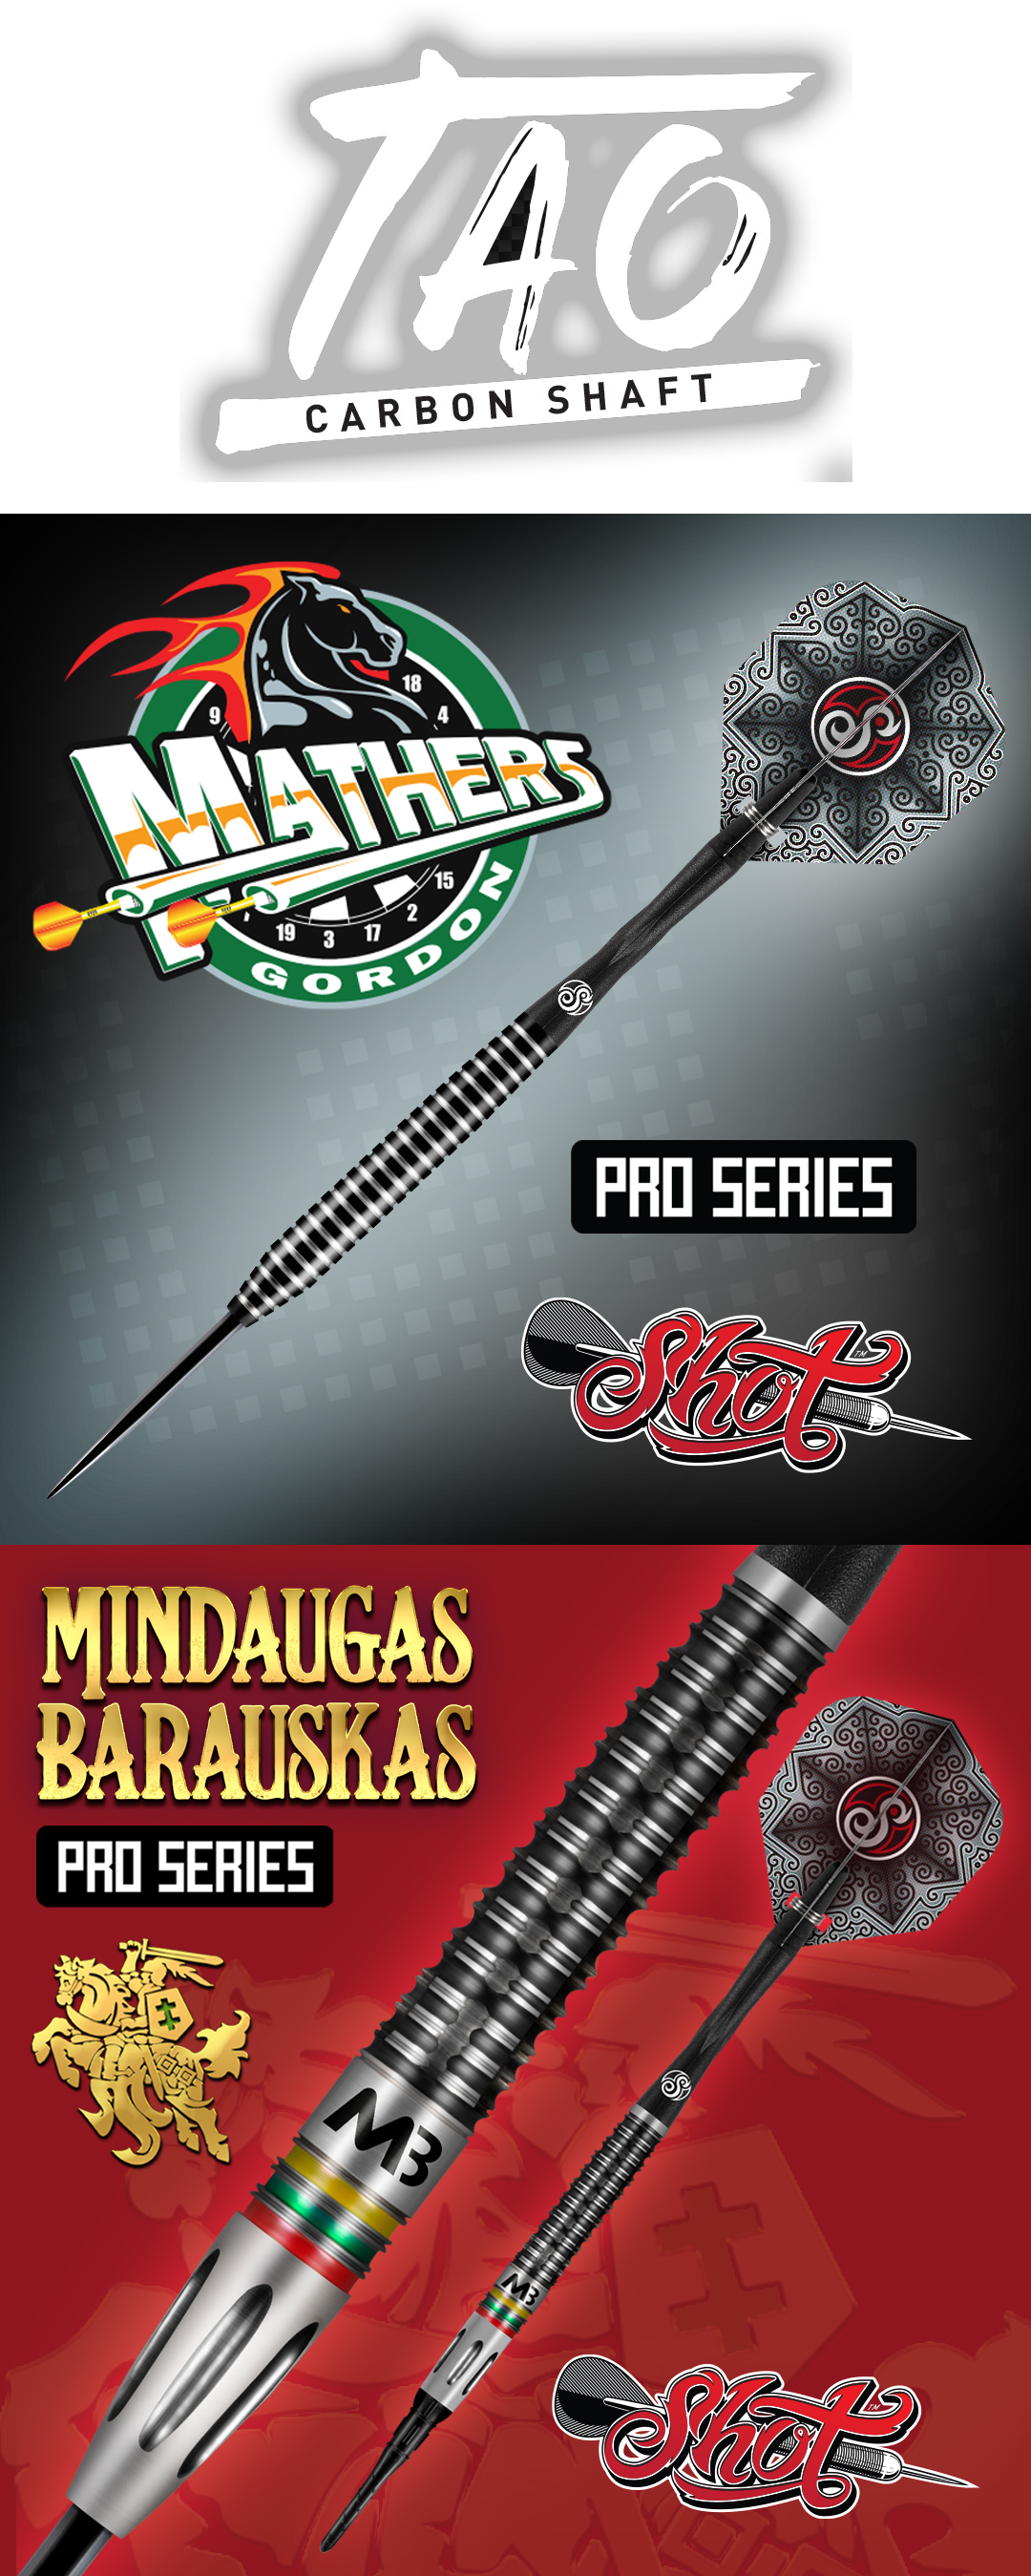 Neue Shot Steeldarts Softdarts 2021 Pro Series Gordon Mathers,  Mindaugas Barauskas Shot Dart Launch 22. April 2021 Shot Dart Neuheiten 2021